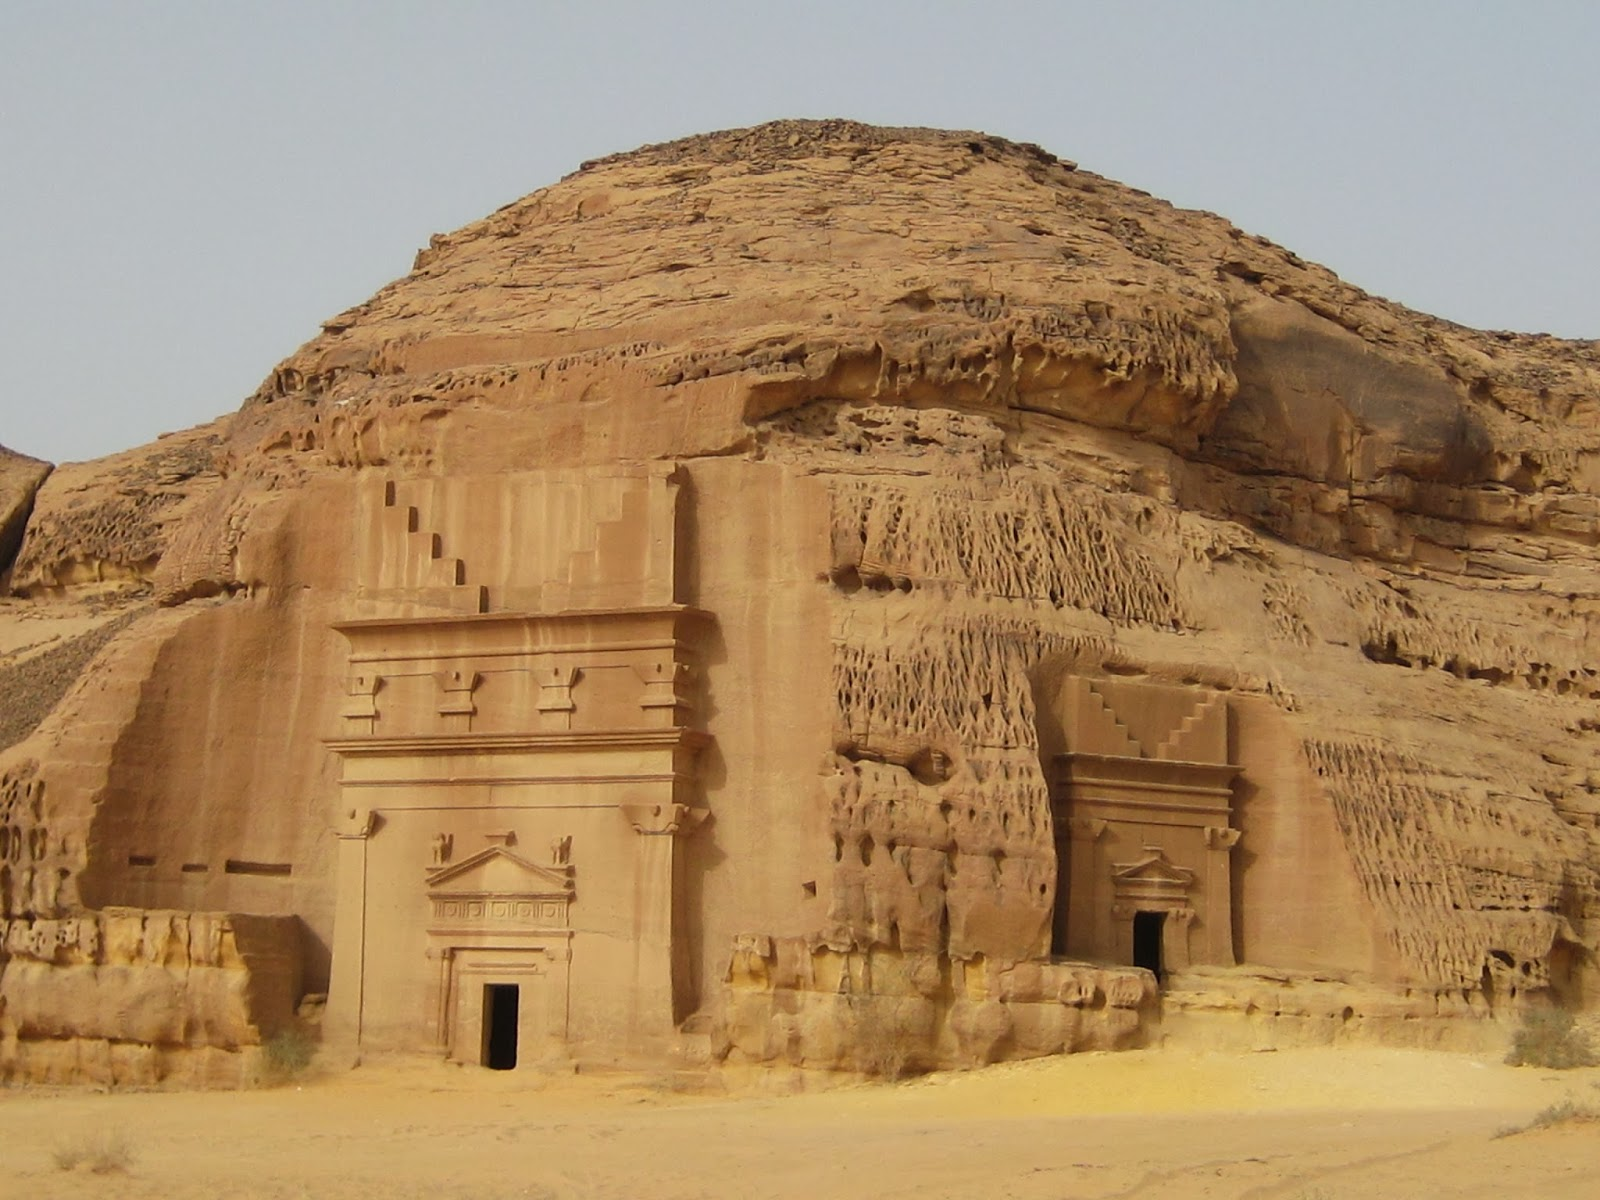 Al Ula Saudi Arabia  city pictures gallery : World Visits: Mada'in Saleh, A Historical Place In Saudi Arabia